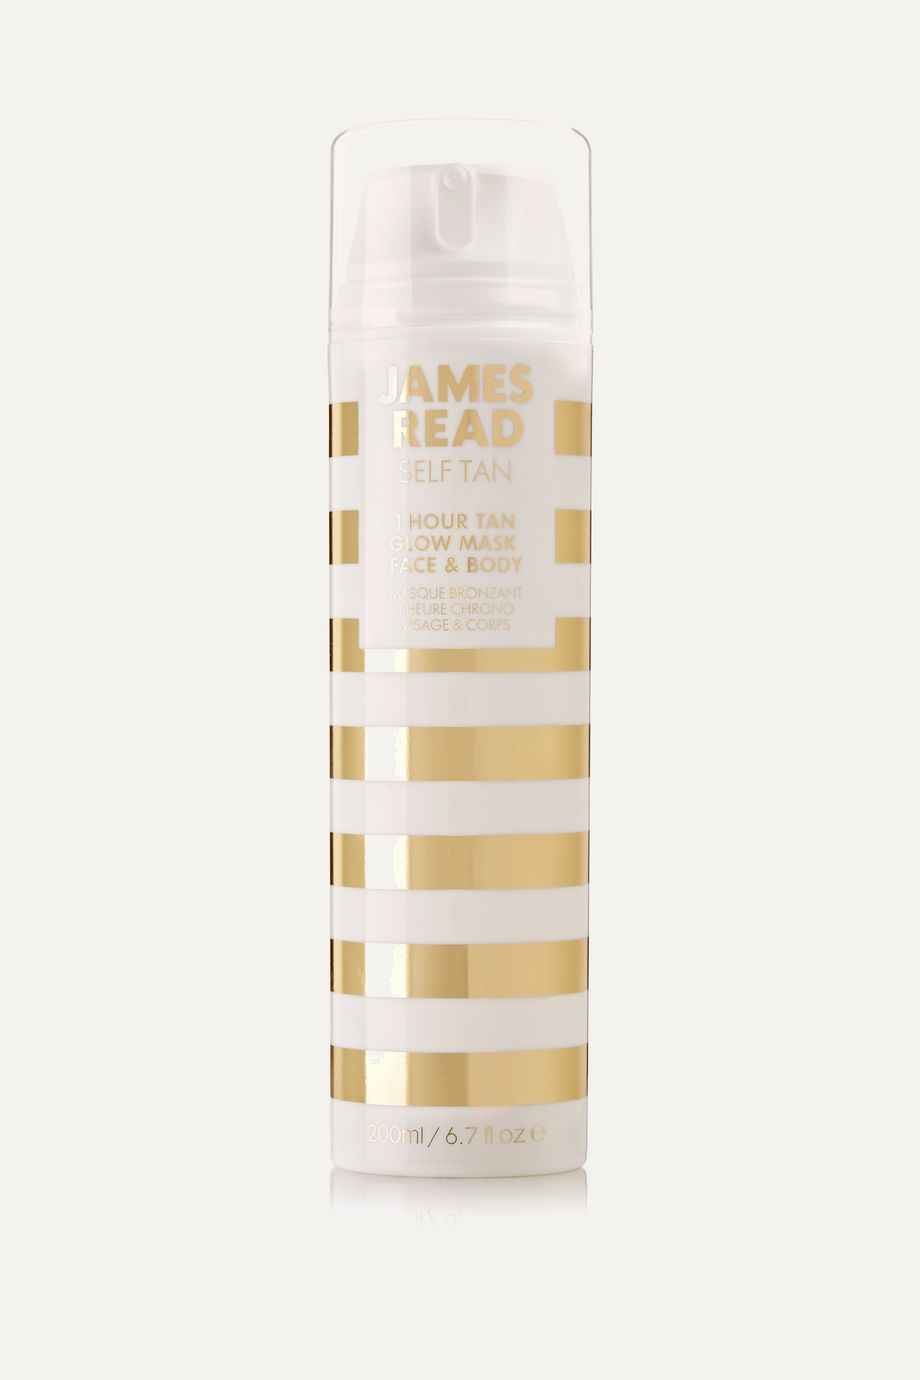 James Read 1 Hour Tan Glow Mask Face and Body, 200ml